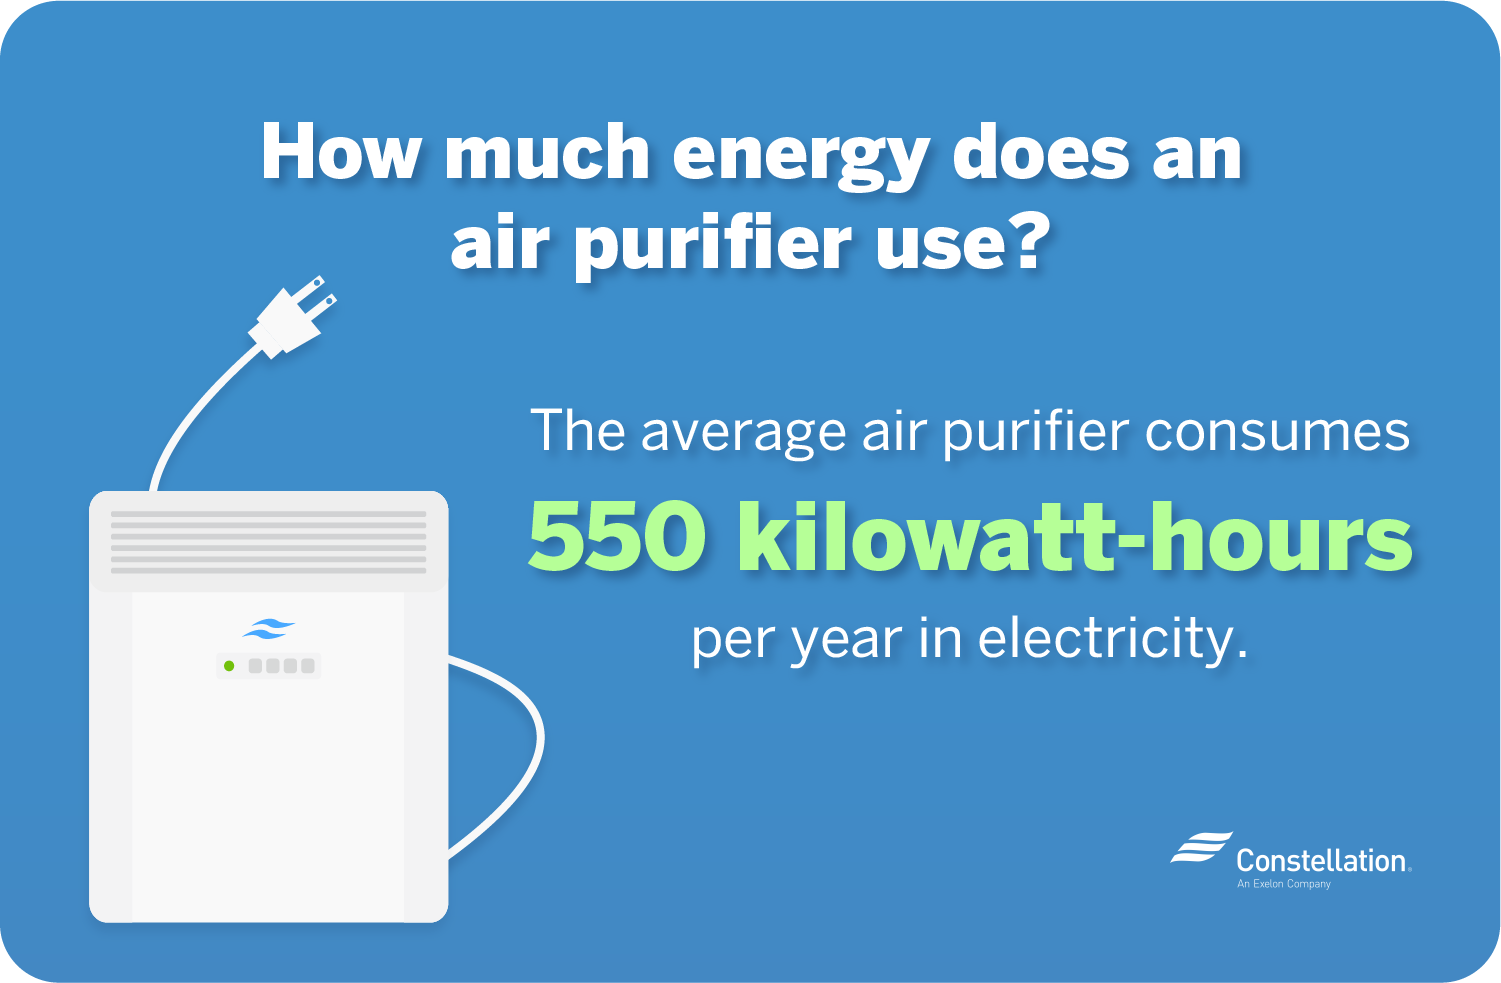 How much energy does an air purifier use?